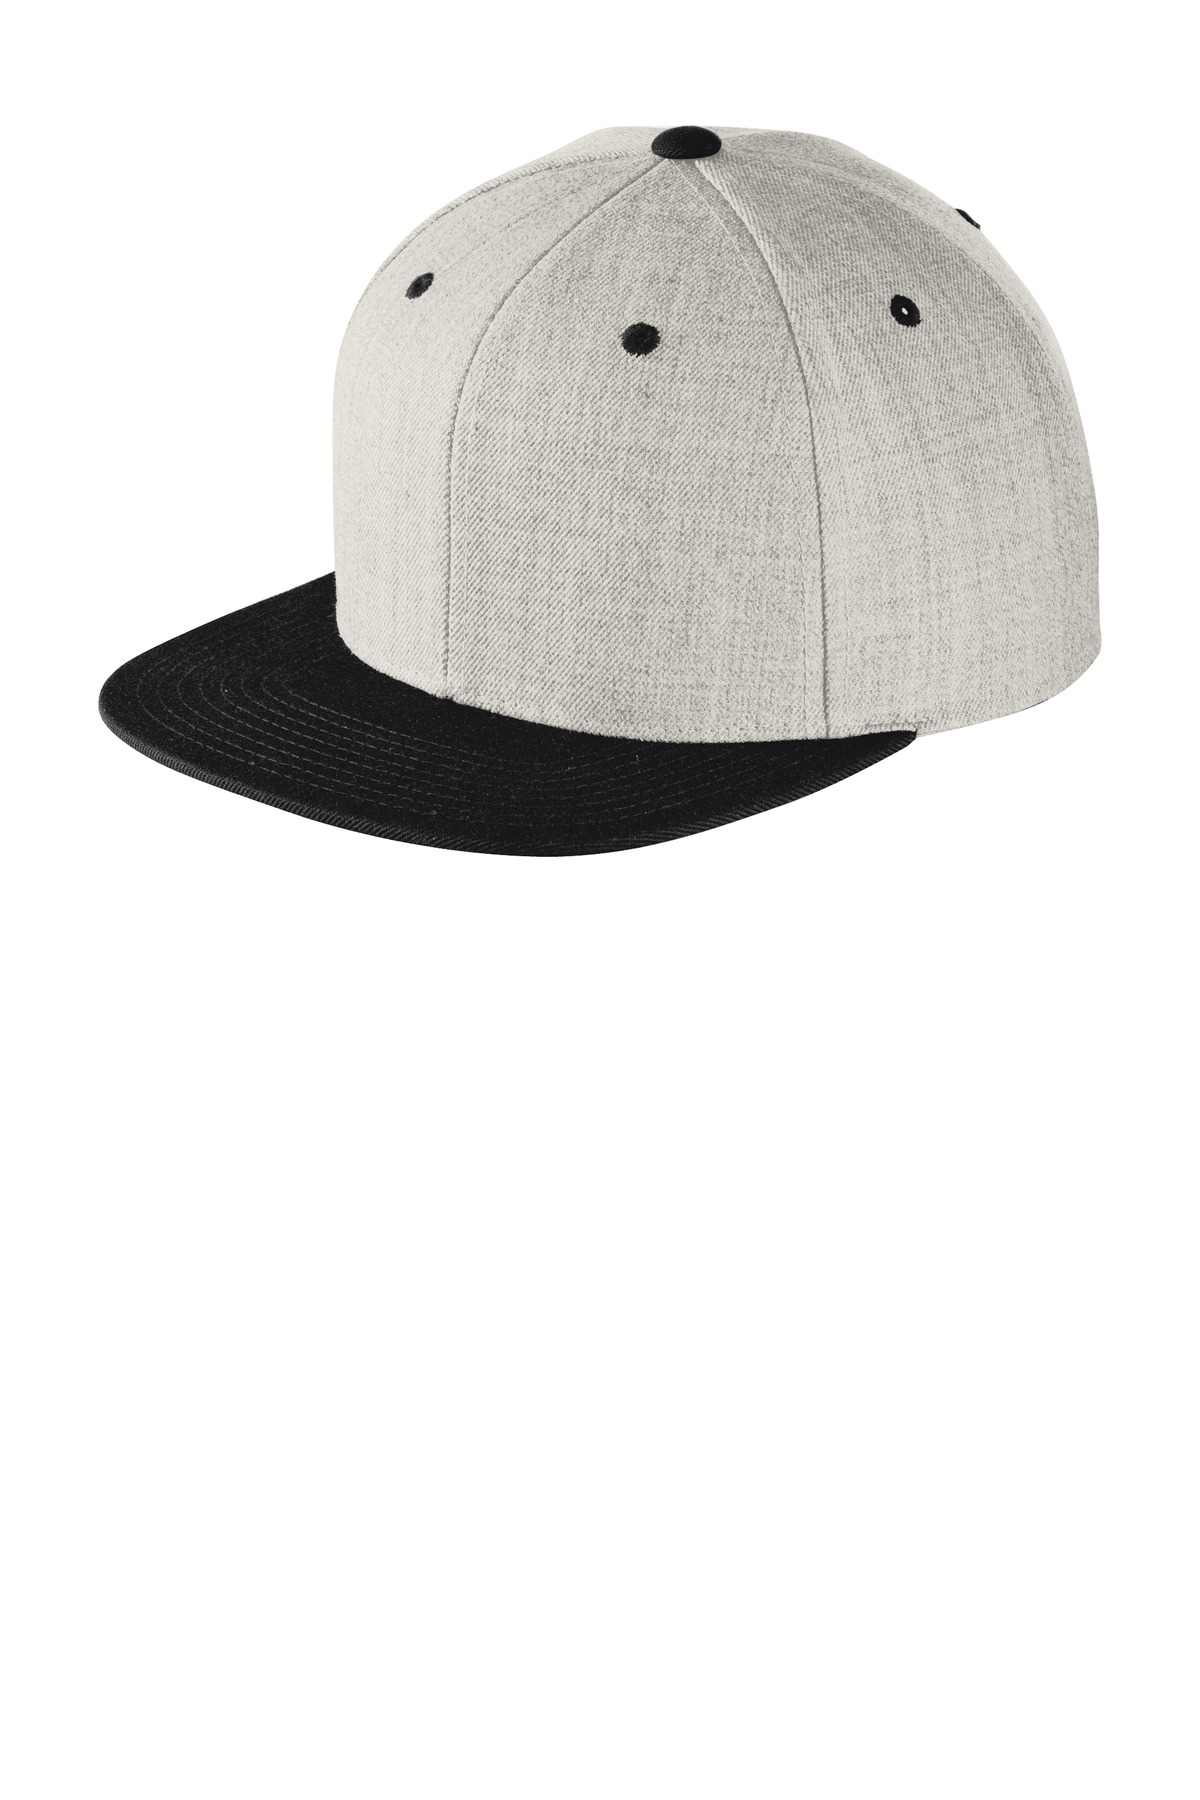 Sport-Tek ®  Yupoong ®  Flat Bill Snapback Cap. STC19 - Heather/ Black